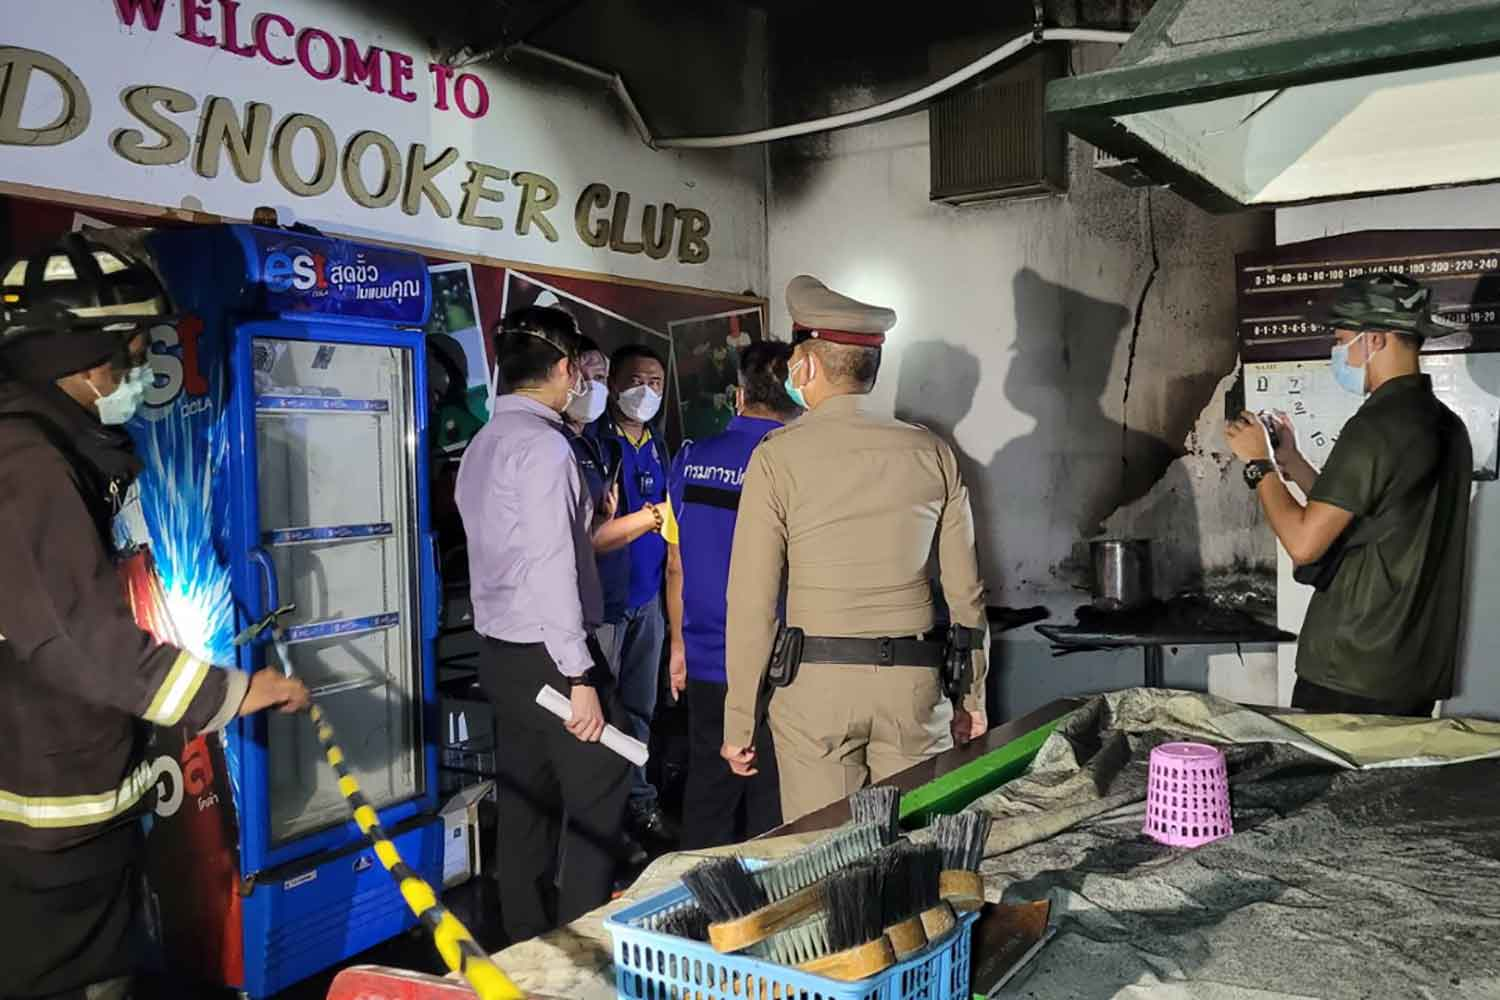 Police at the scene after the fire was put out in the disused snooker club in the basement of a quarantine hotel on King Kaew Road in Bangphli district, Samut Prakan, on Wednesday night. (Photo: Sutthiwit Chayutworakan)